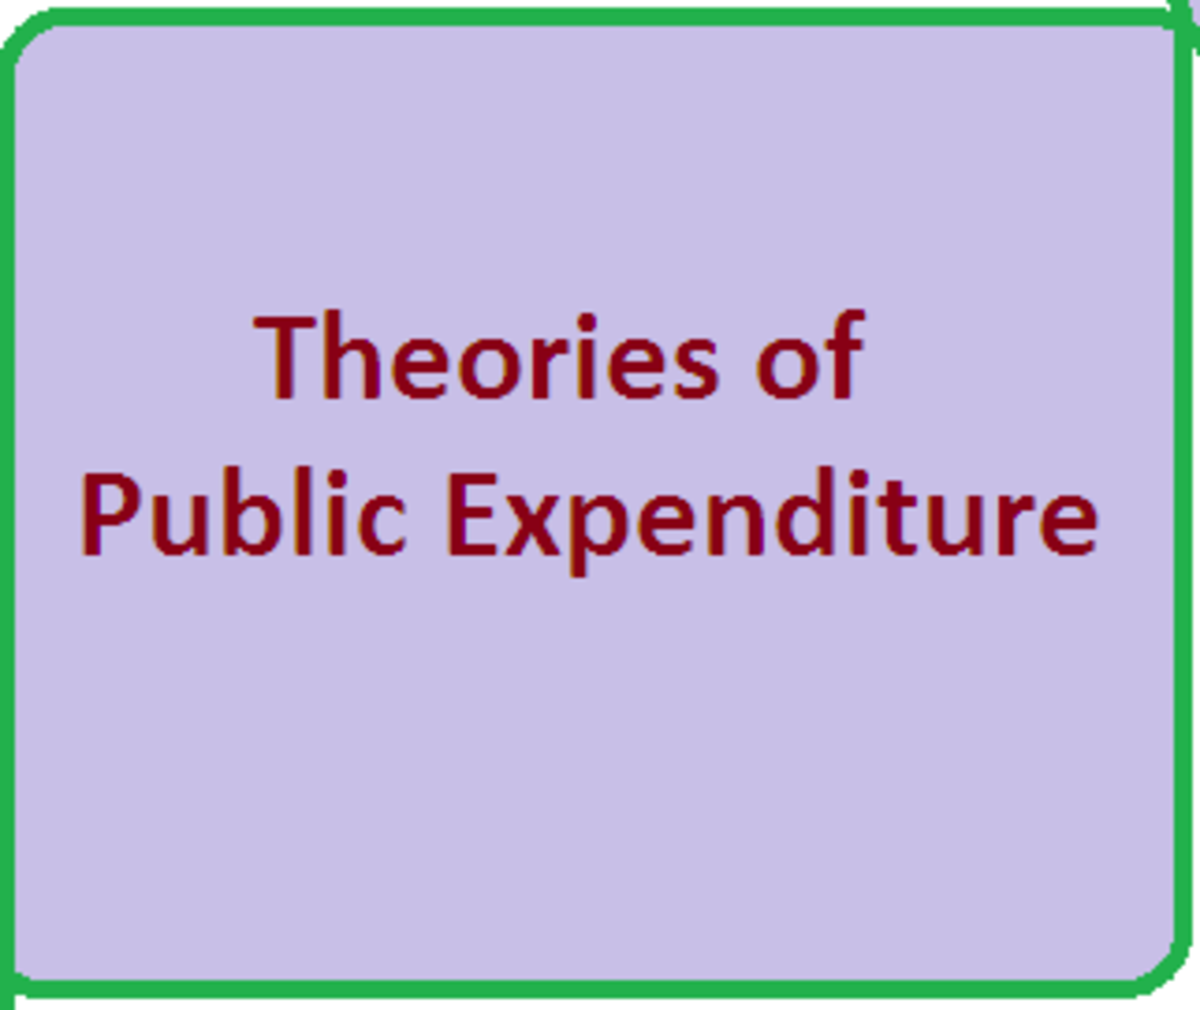 theories-of-public-expenditure